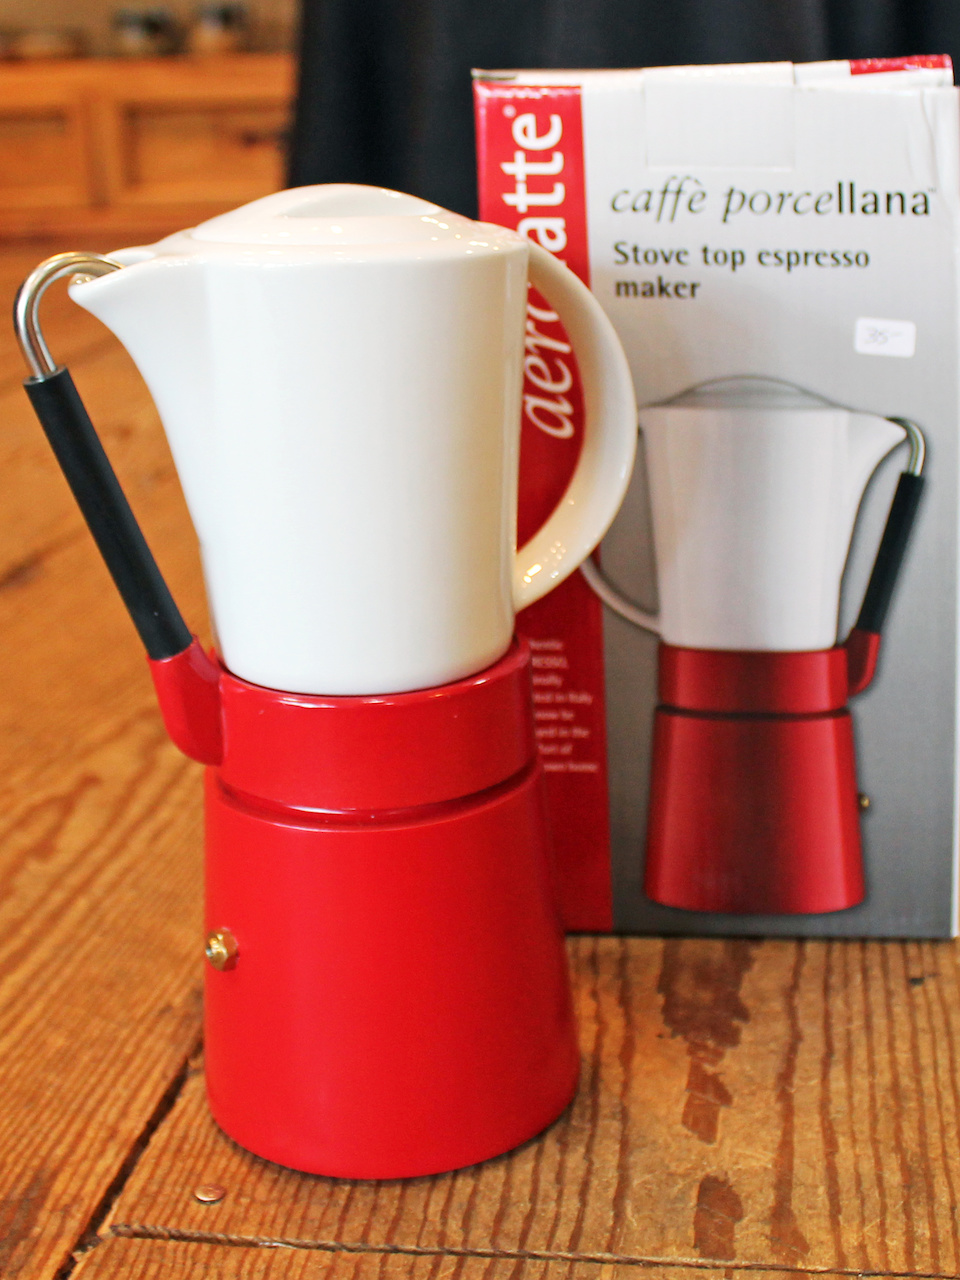 Caffe Porcellana stove top espresso maker, $35, at The Cook Store